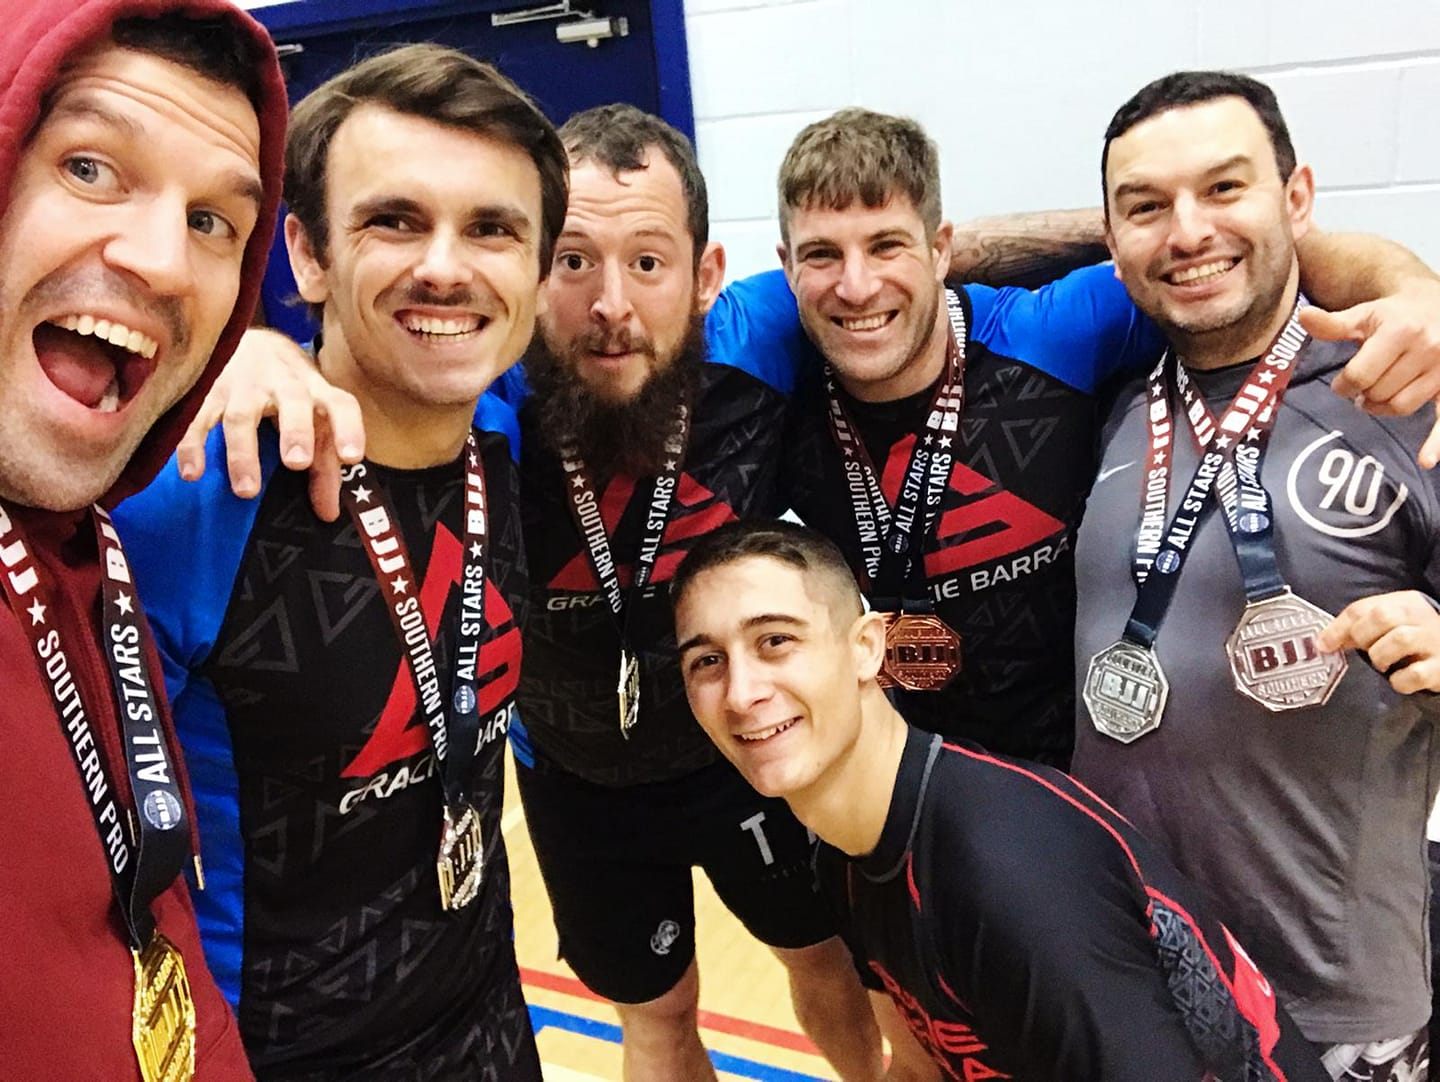 Dedication being rewarded with results – medal glory for Gracie Barra Hastings